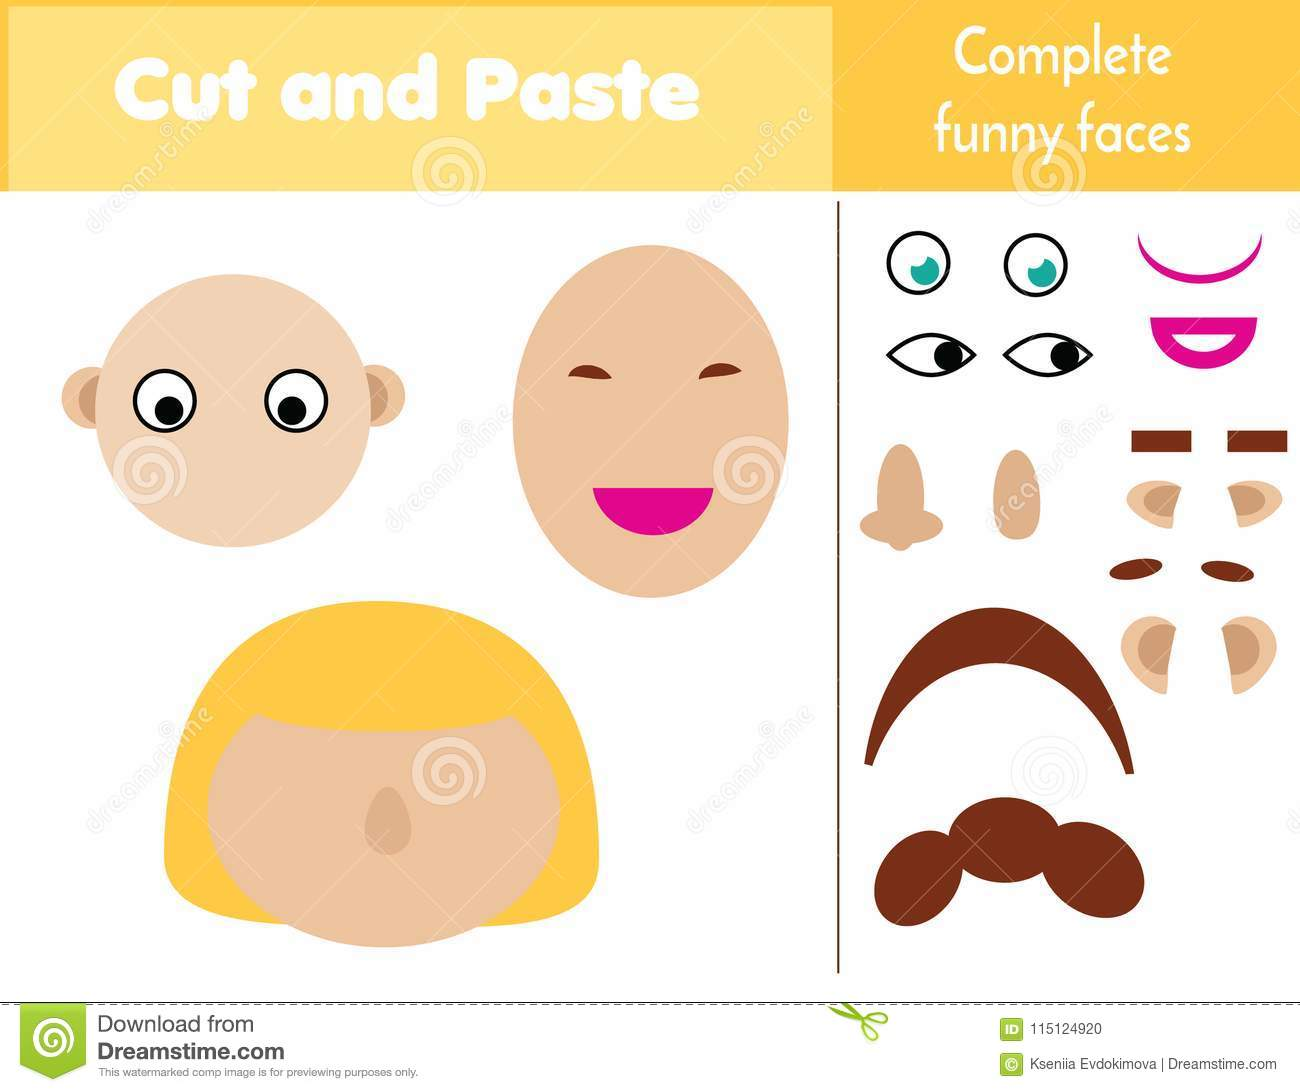 Cut And Paste Children Educational Game Paper Cutting Activity Complete Funny Faces With Glue